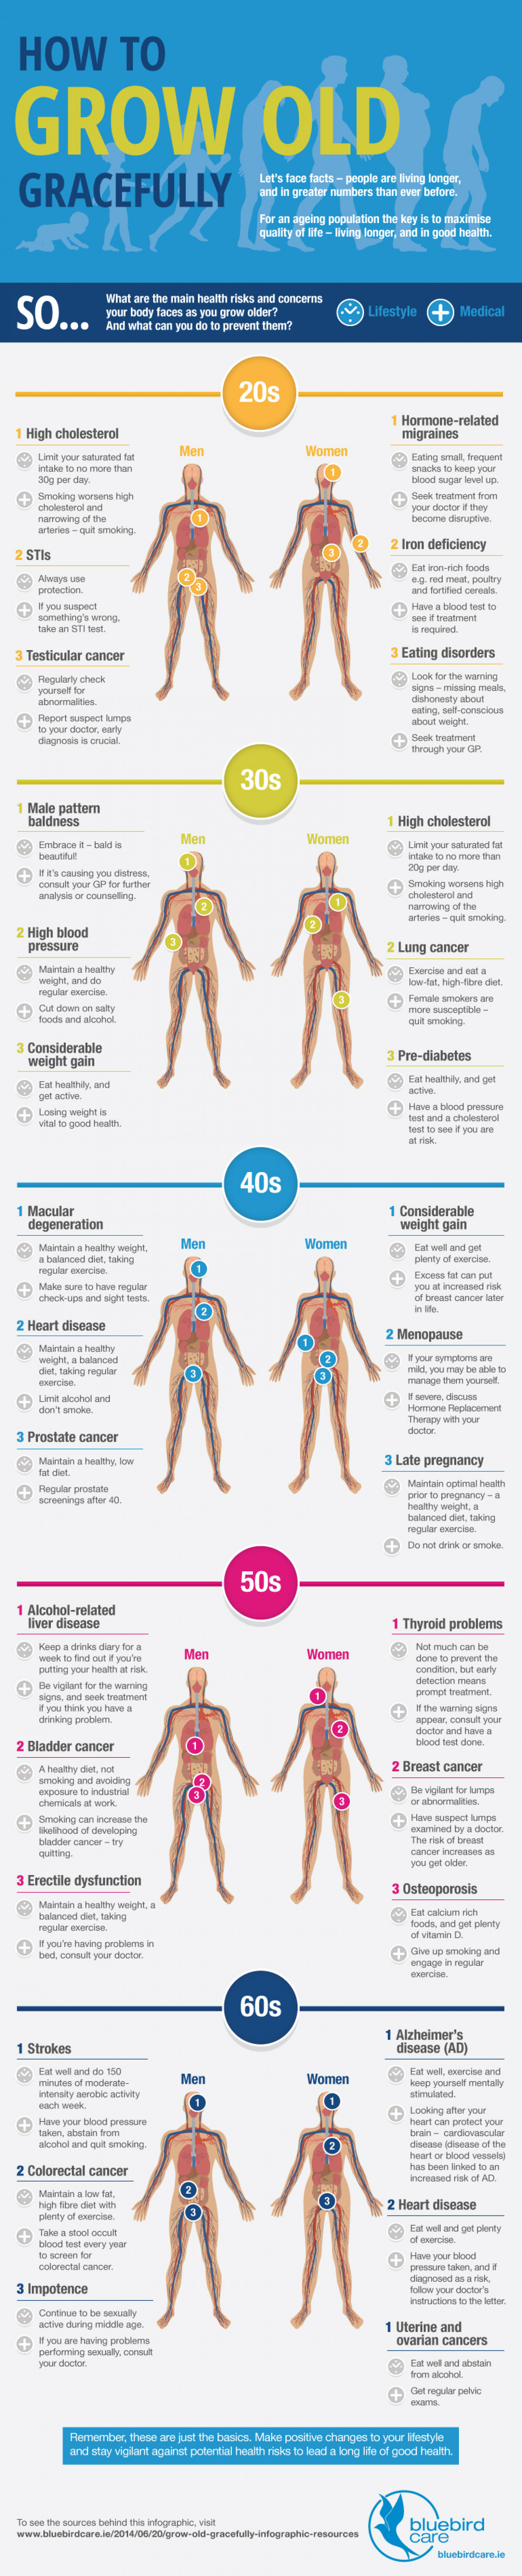 How To Grow Old Gracefully Infographic